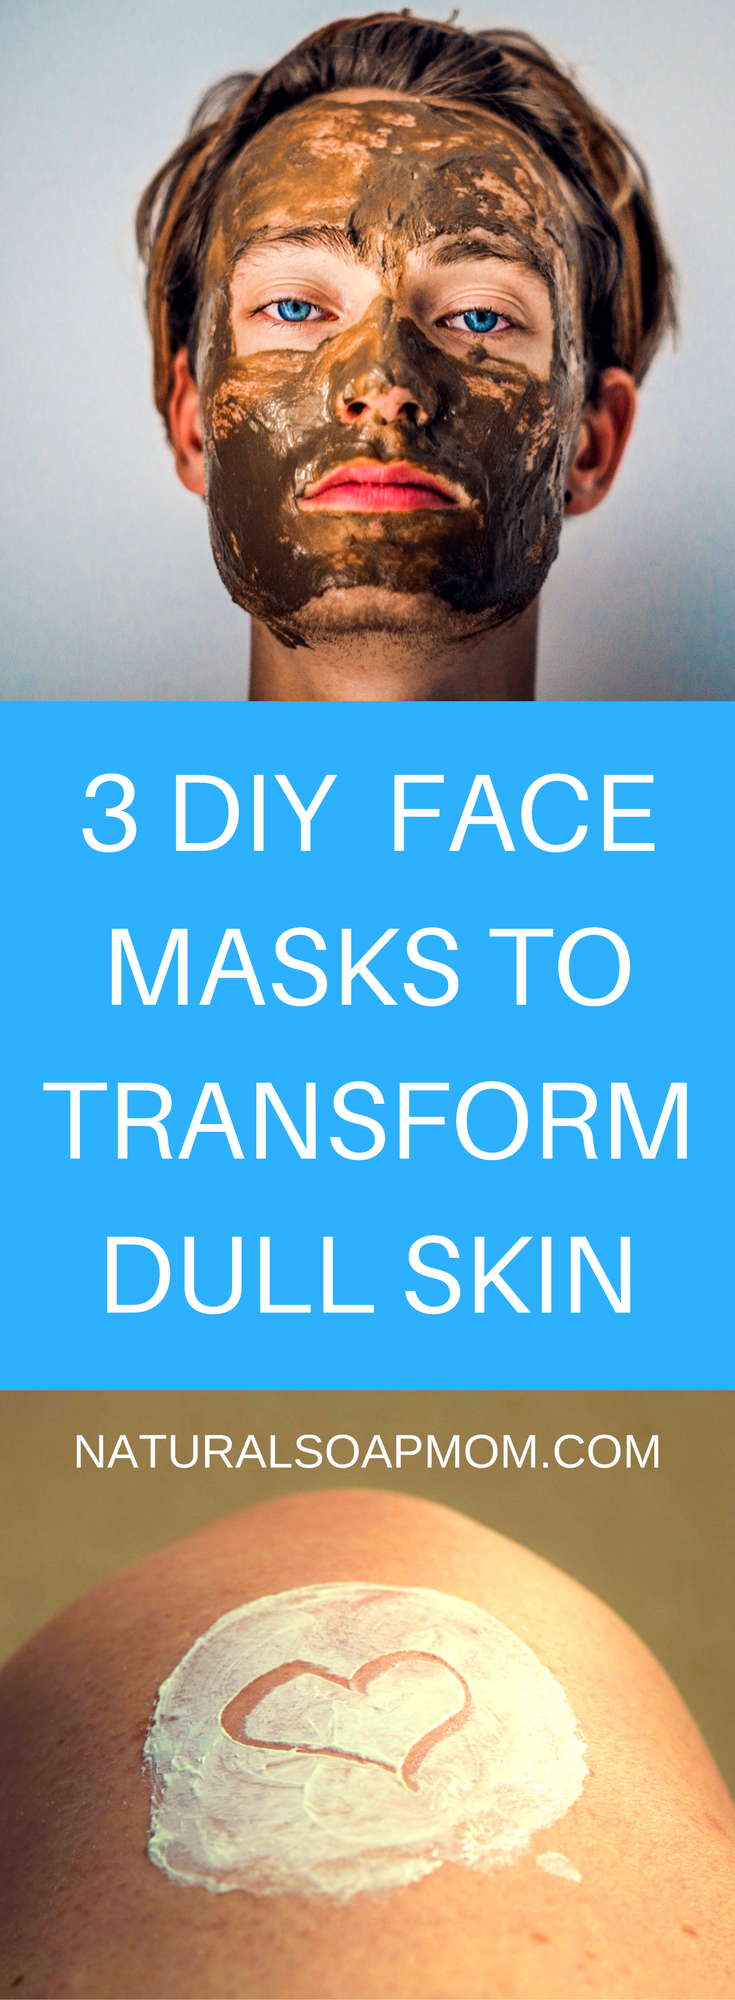 Has your skin gone from glowing - to dull and lifeless? The harsh months of winter take a toll on your skin. Bring the glow back to your skin with these 3 DIY Face Masks. They work great and are simple to whip up!